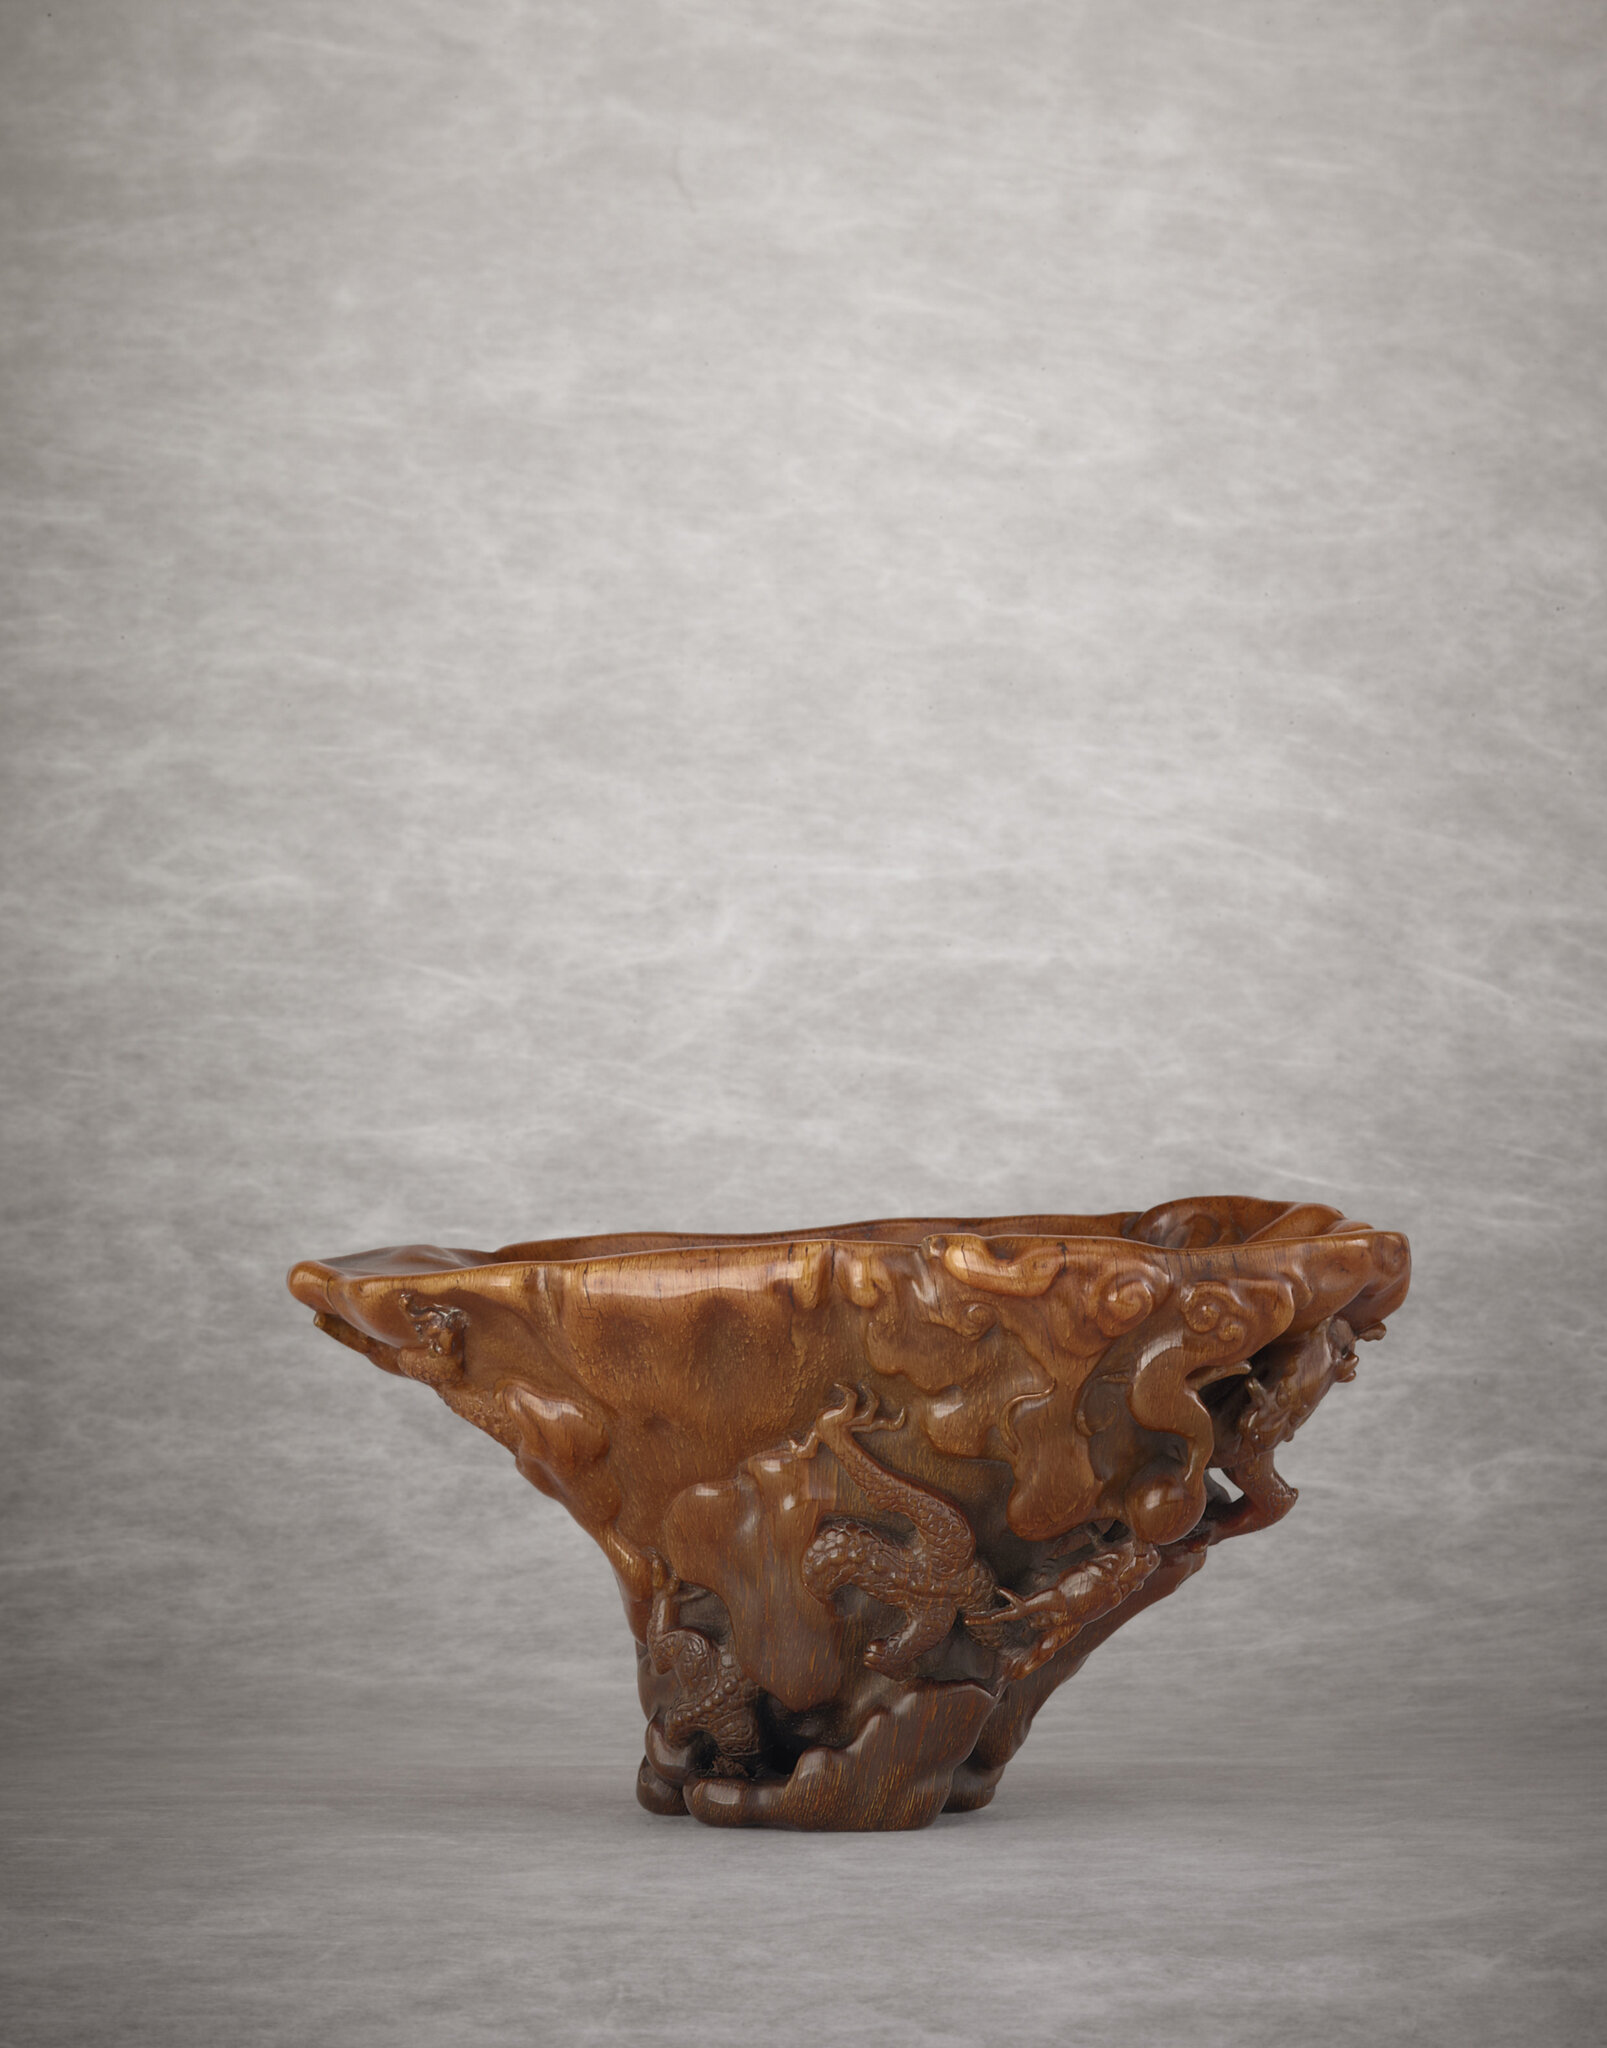 A rare and superbly carved rhinoceros horn 'dragon' libation cup, Qing dynasty, early 18th century